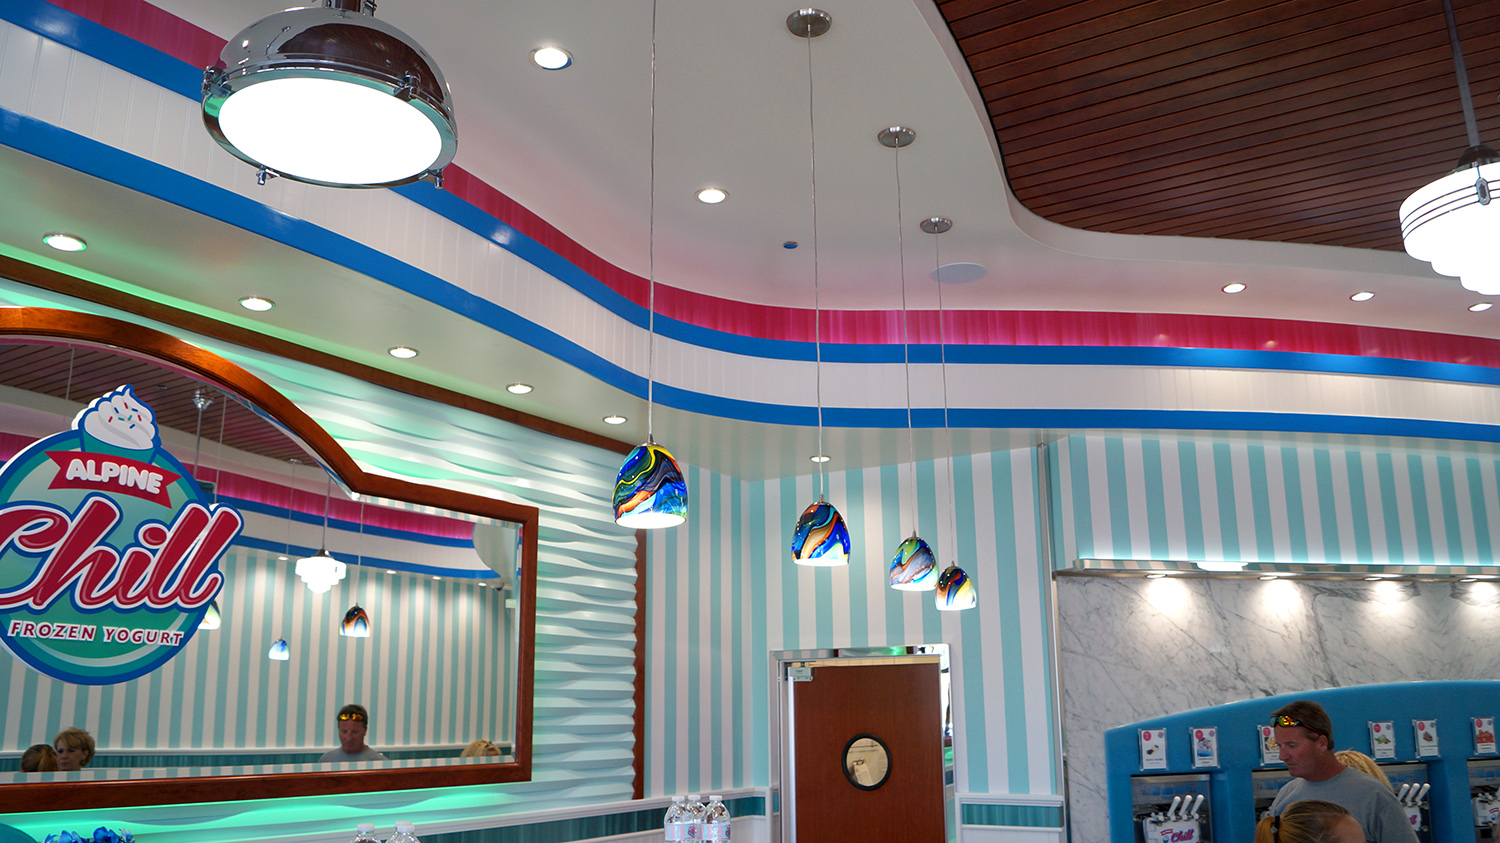 Alpine Chill frozen yogurt shop interior design and branding